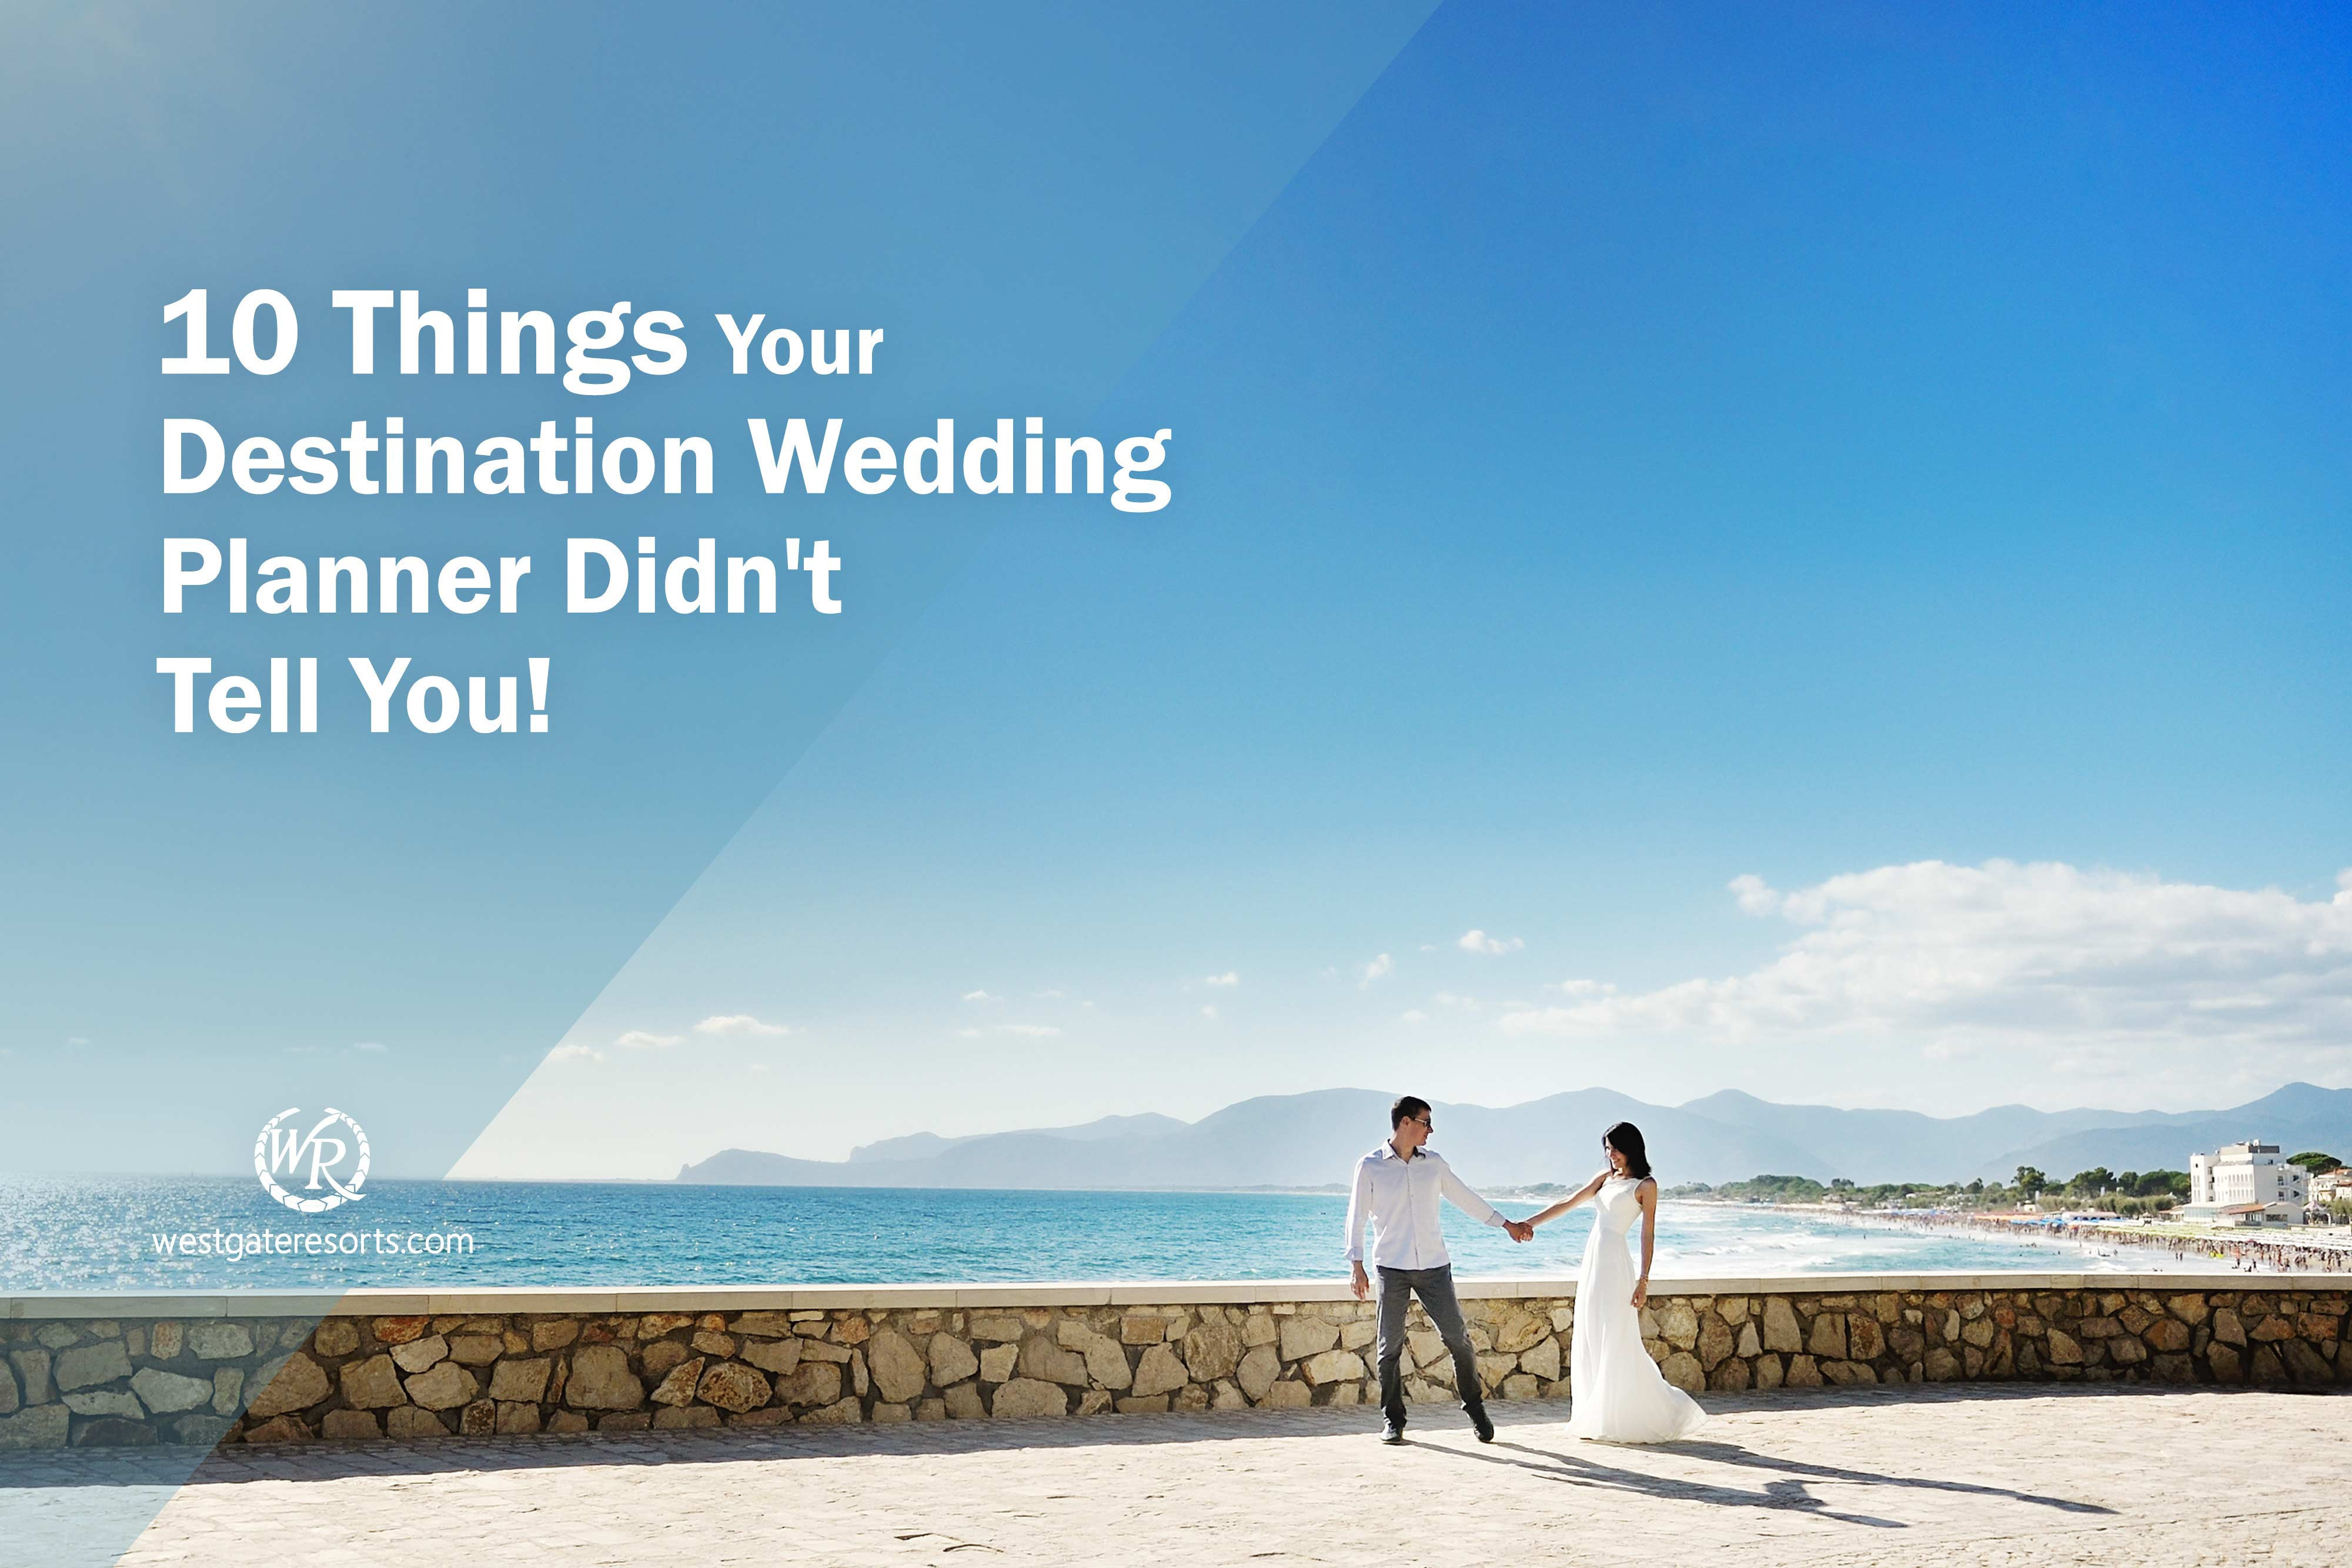 10 Things Your Destination Wedding Planner Didn't Tell You | Westgate Weddings